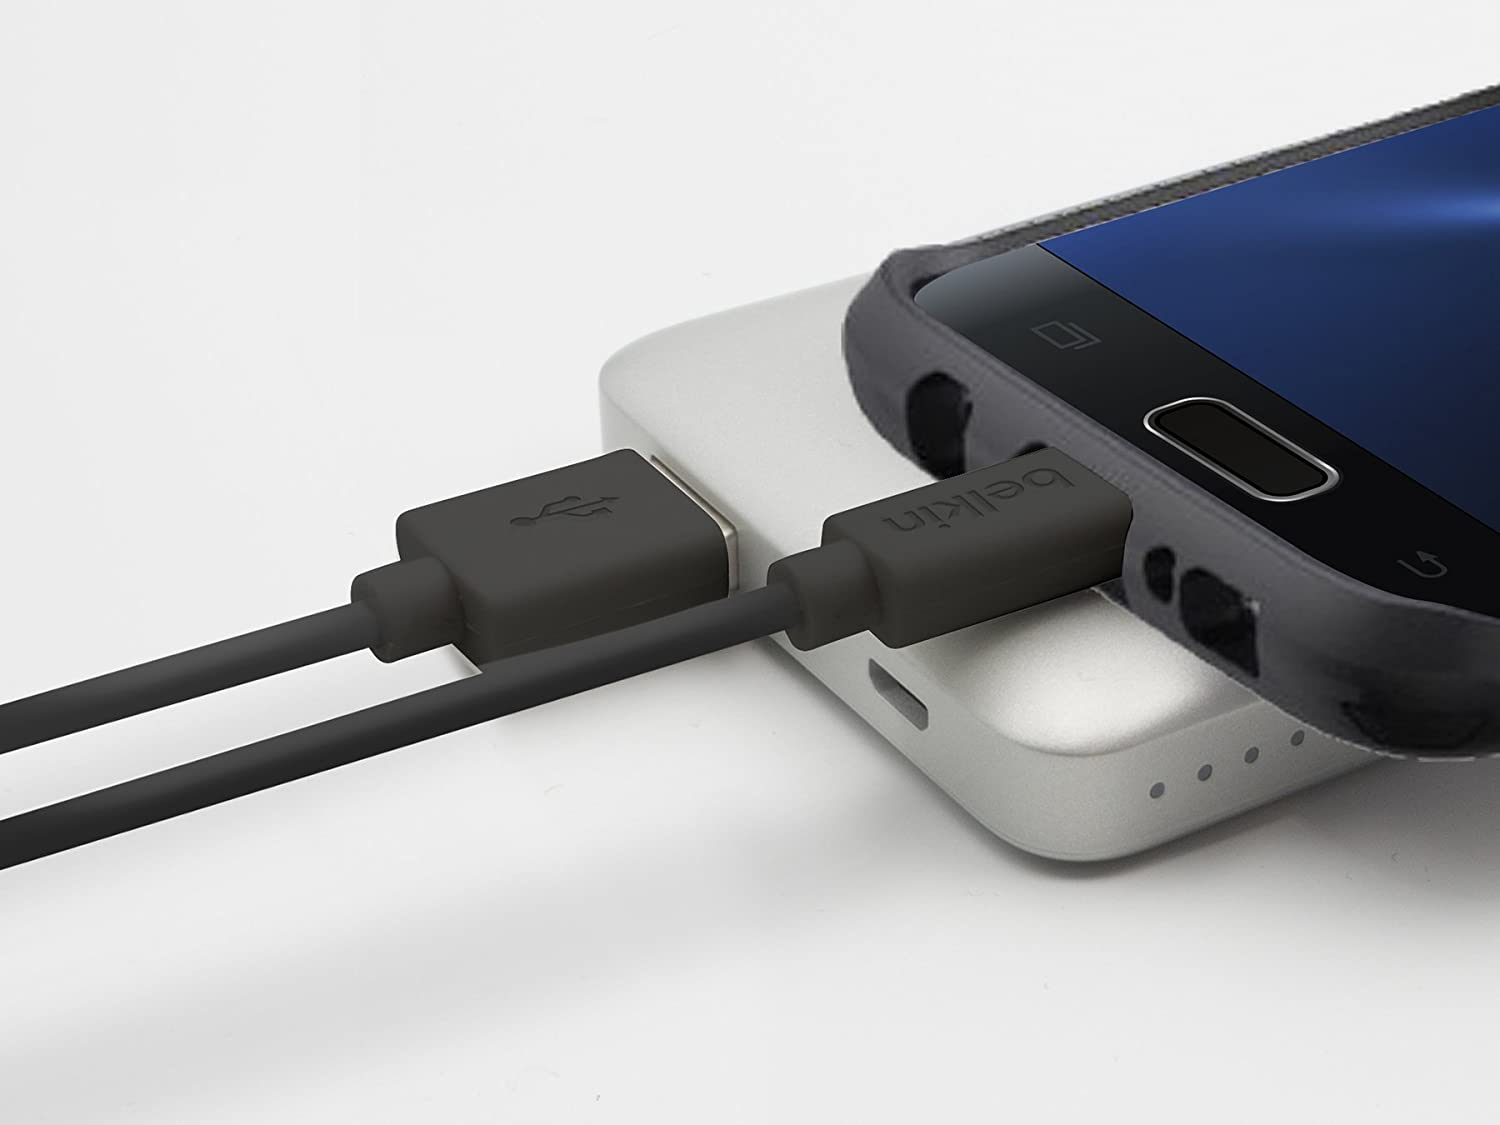 Belkin MIXIT? Micro USB Cable for Samsung Phones